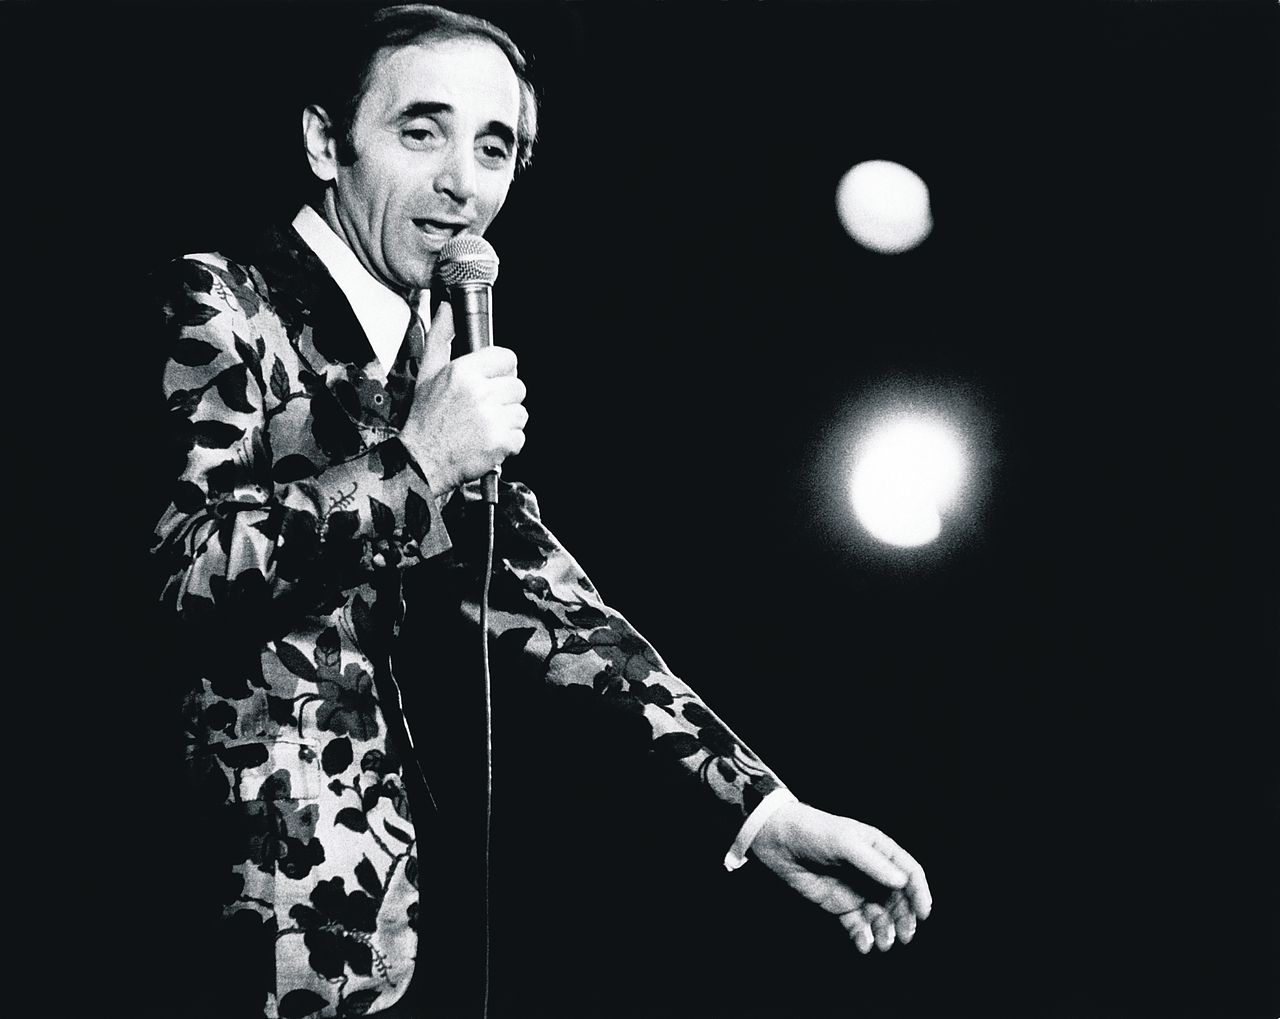 Charles Aznavour in het Parijse theater Olympia, 1973